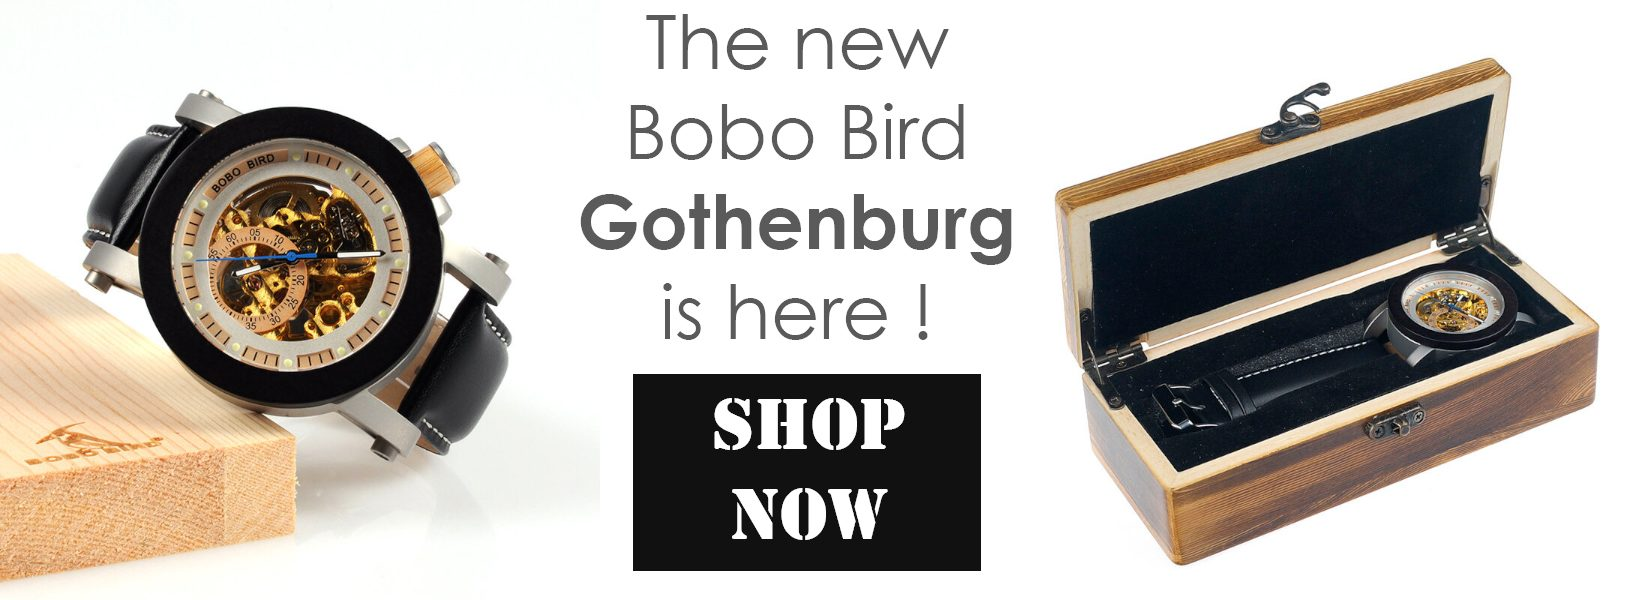 bobo bird gothenburg wooden watch uk